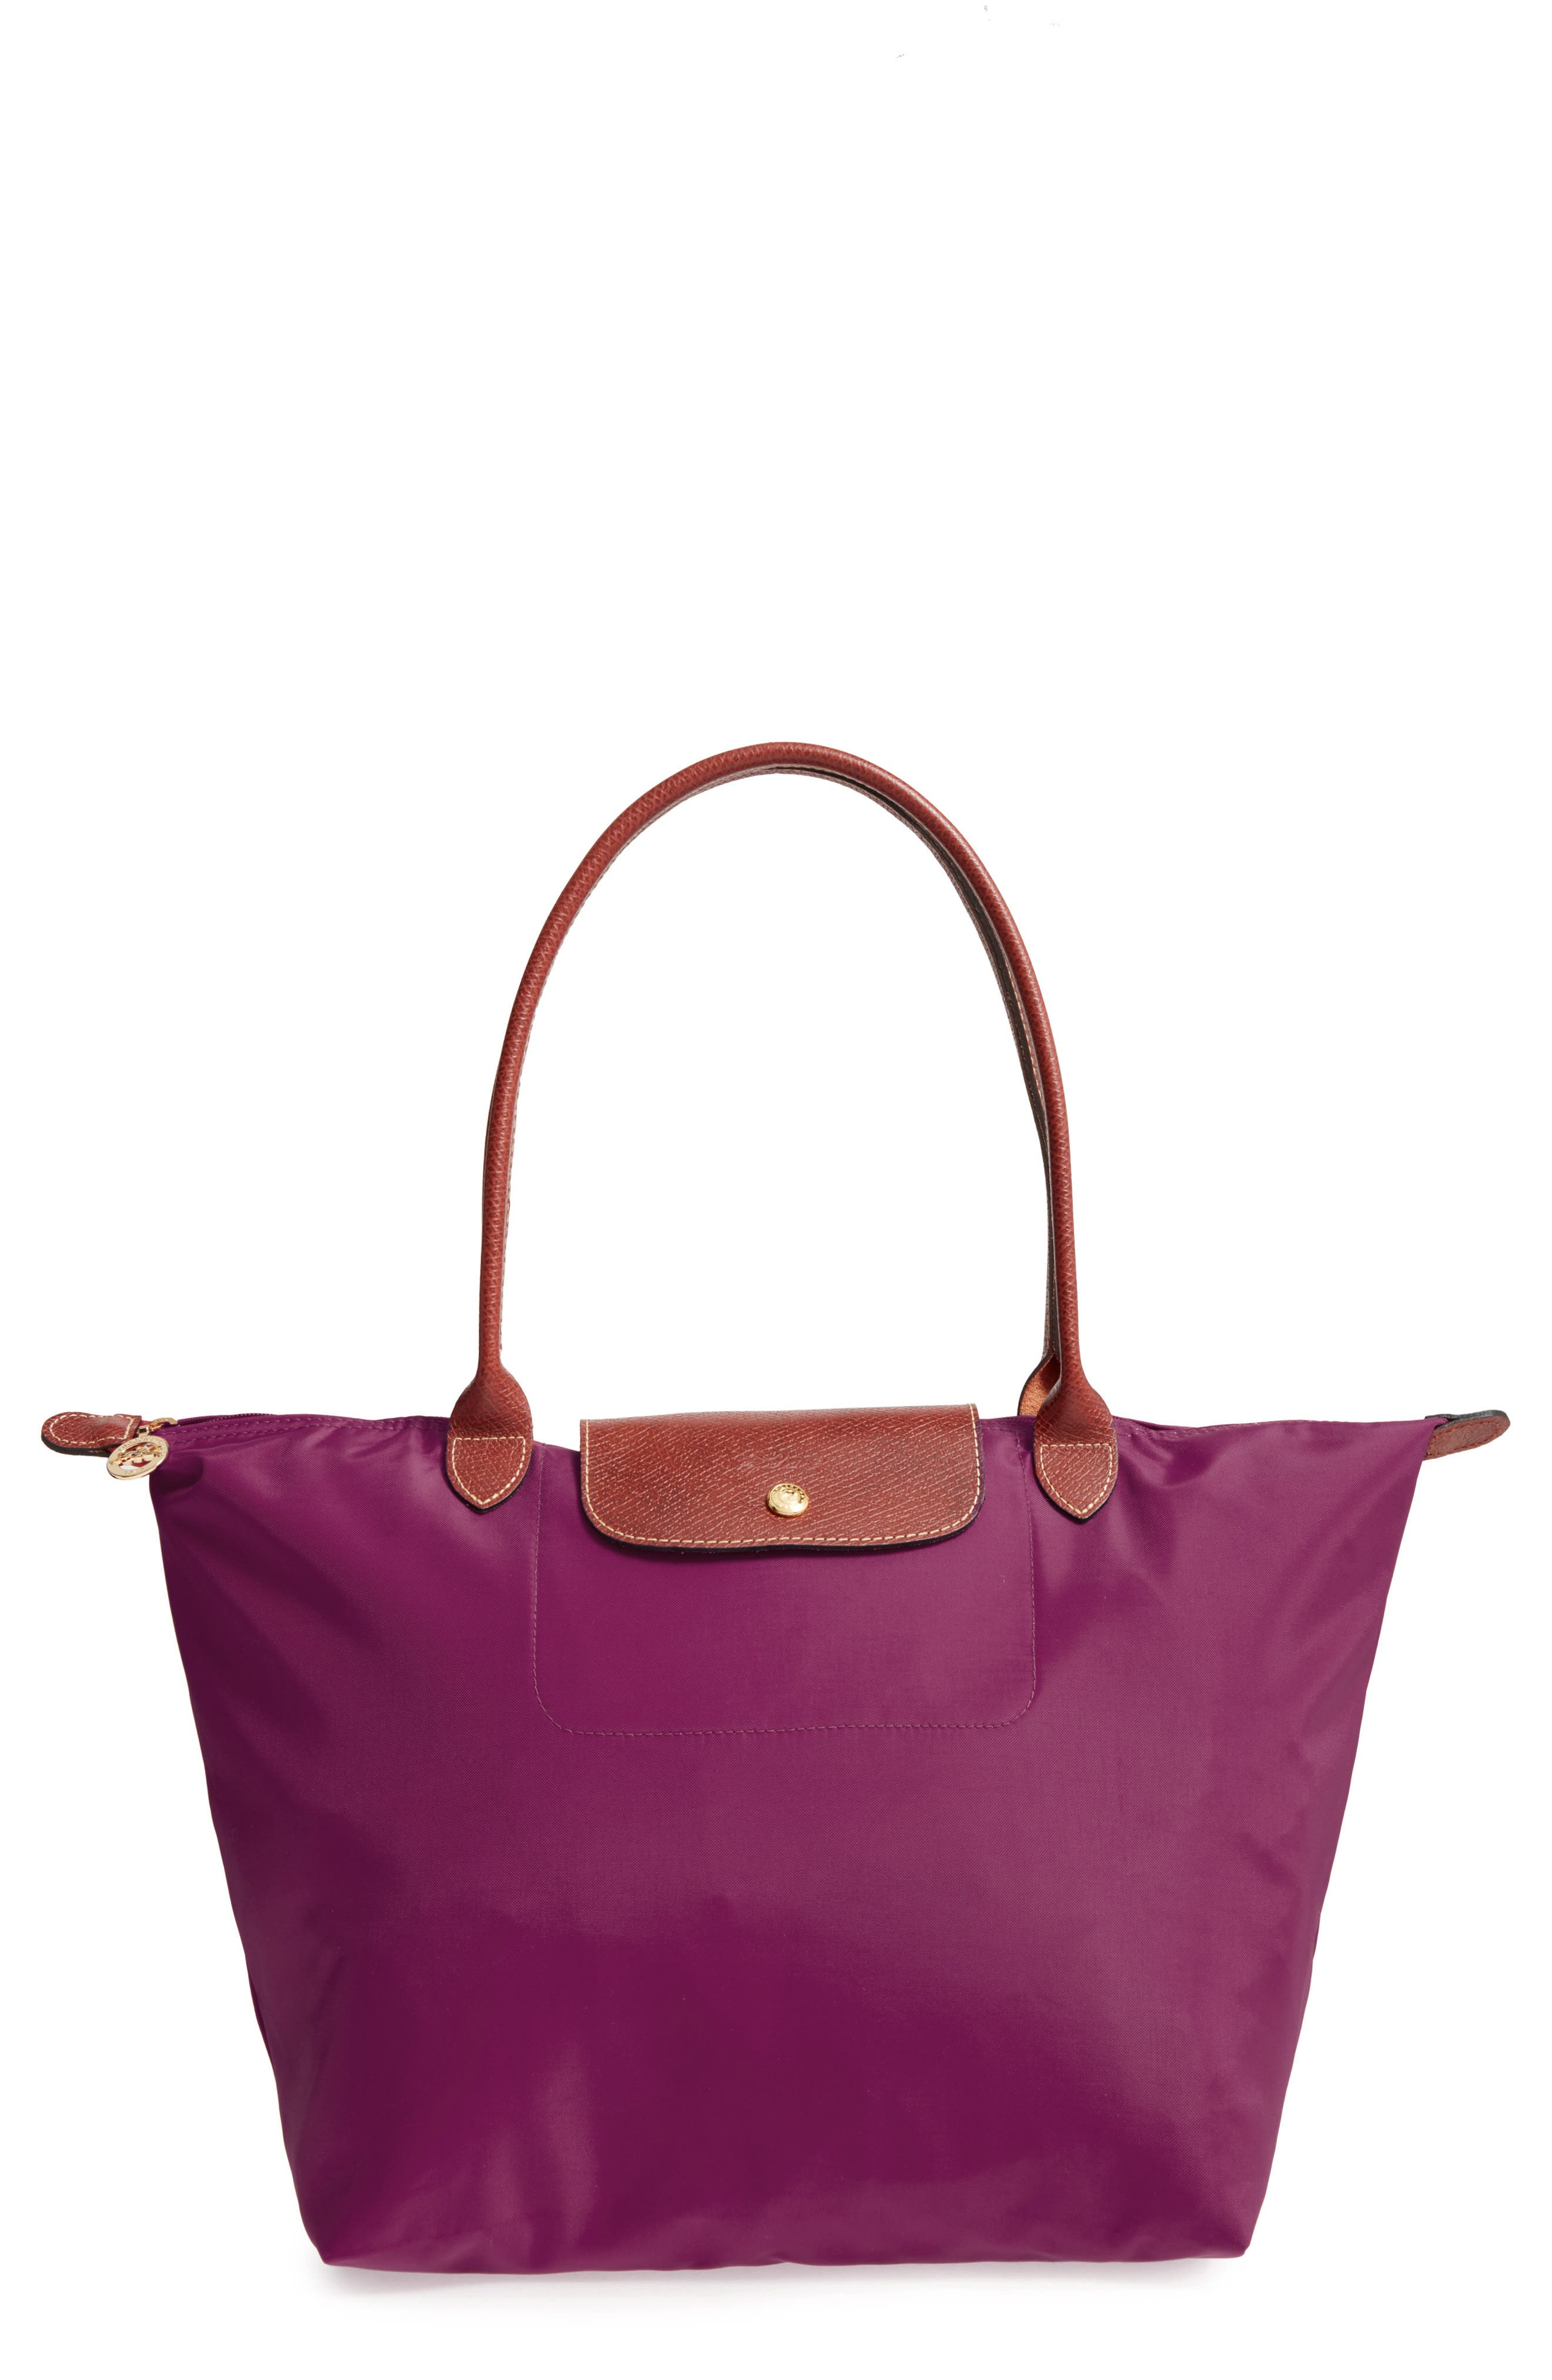 'Large Le Pliage' Tote,                         Main,                         color, Dahlia